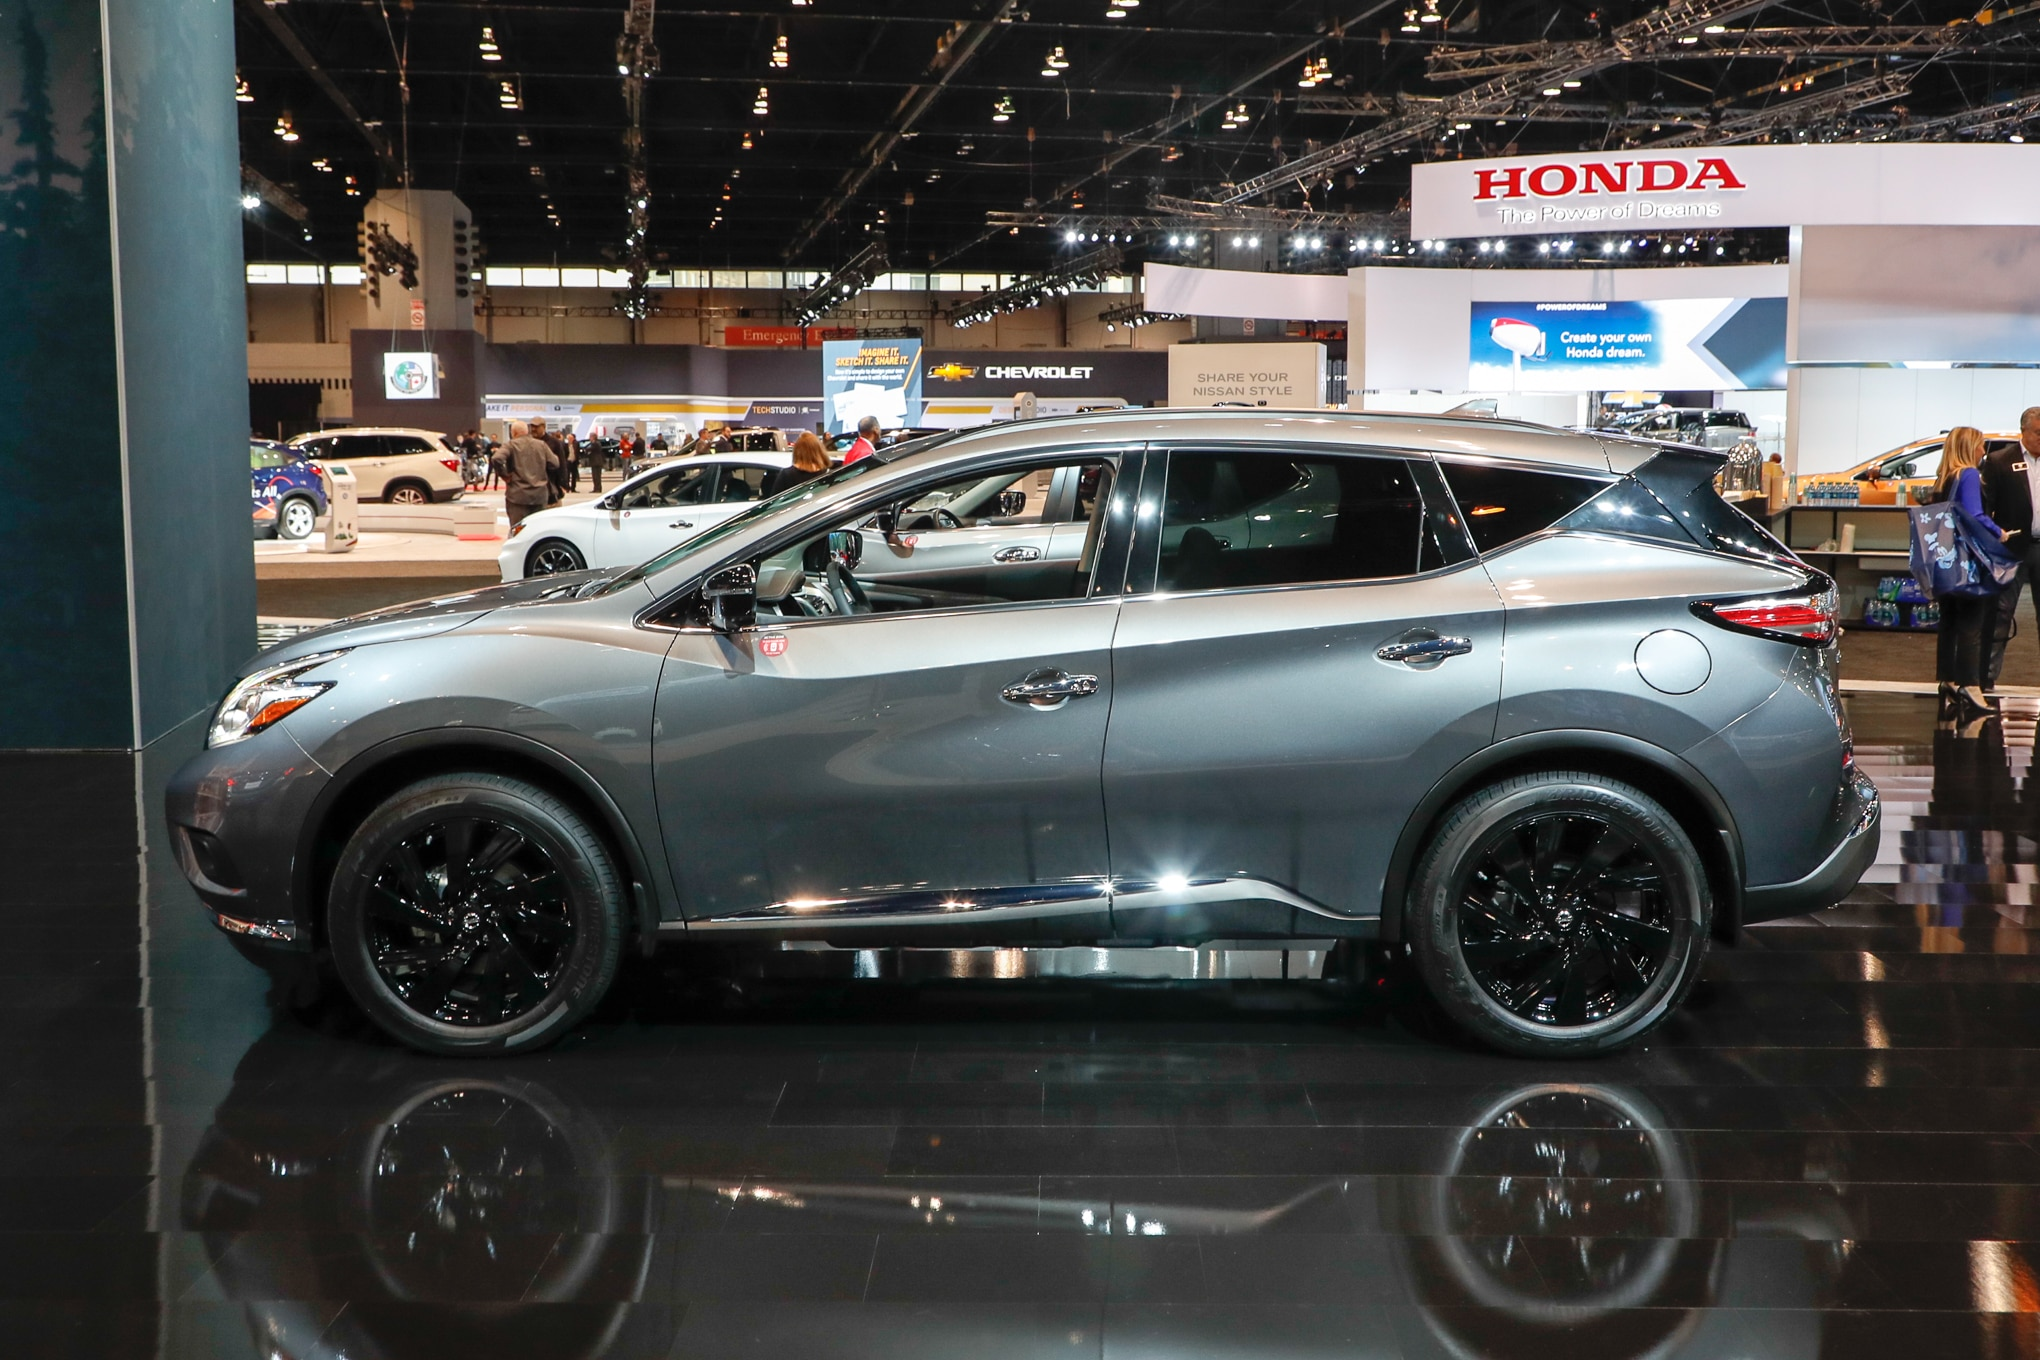 2017 Nissan Murano Price Unveiled, Starts at $30,710 | Automobile Magazine